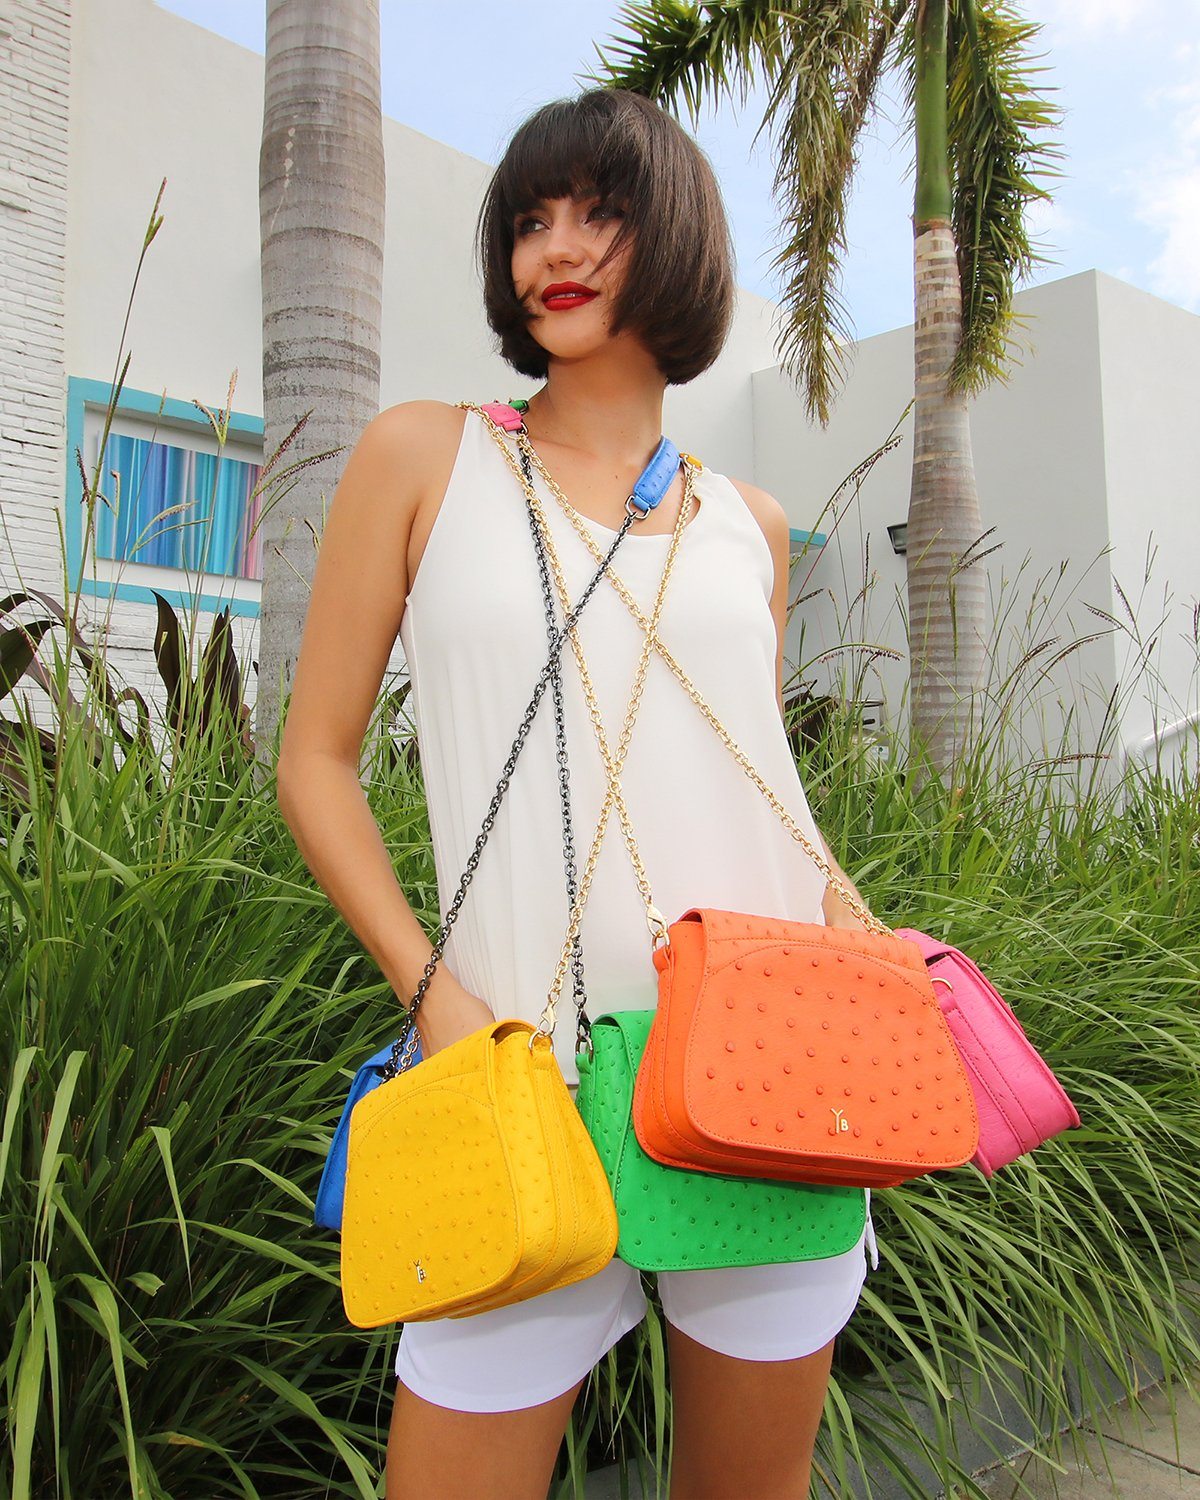 Ostrich Bags Pretty Happy Model with Benny Crossbody Handbags in Colors Sustainable Genuine Ostrich in Miami Deco Background and Palms